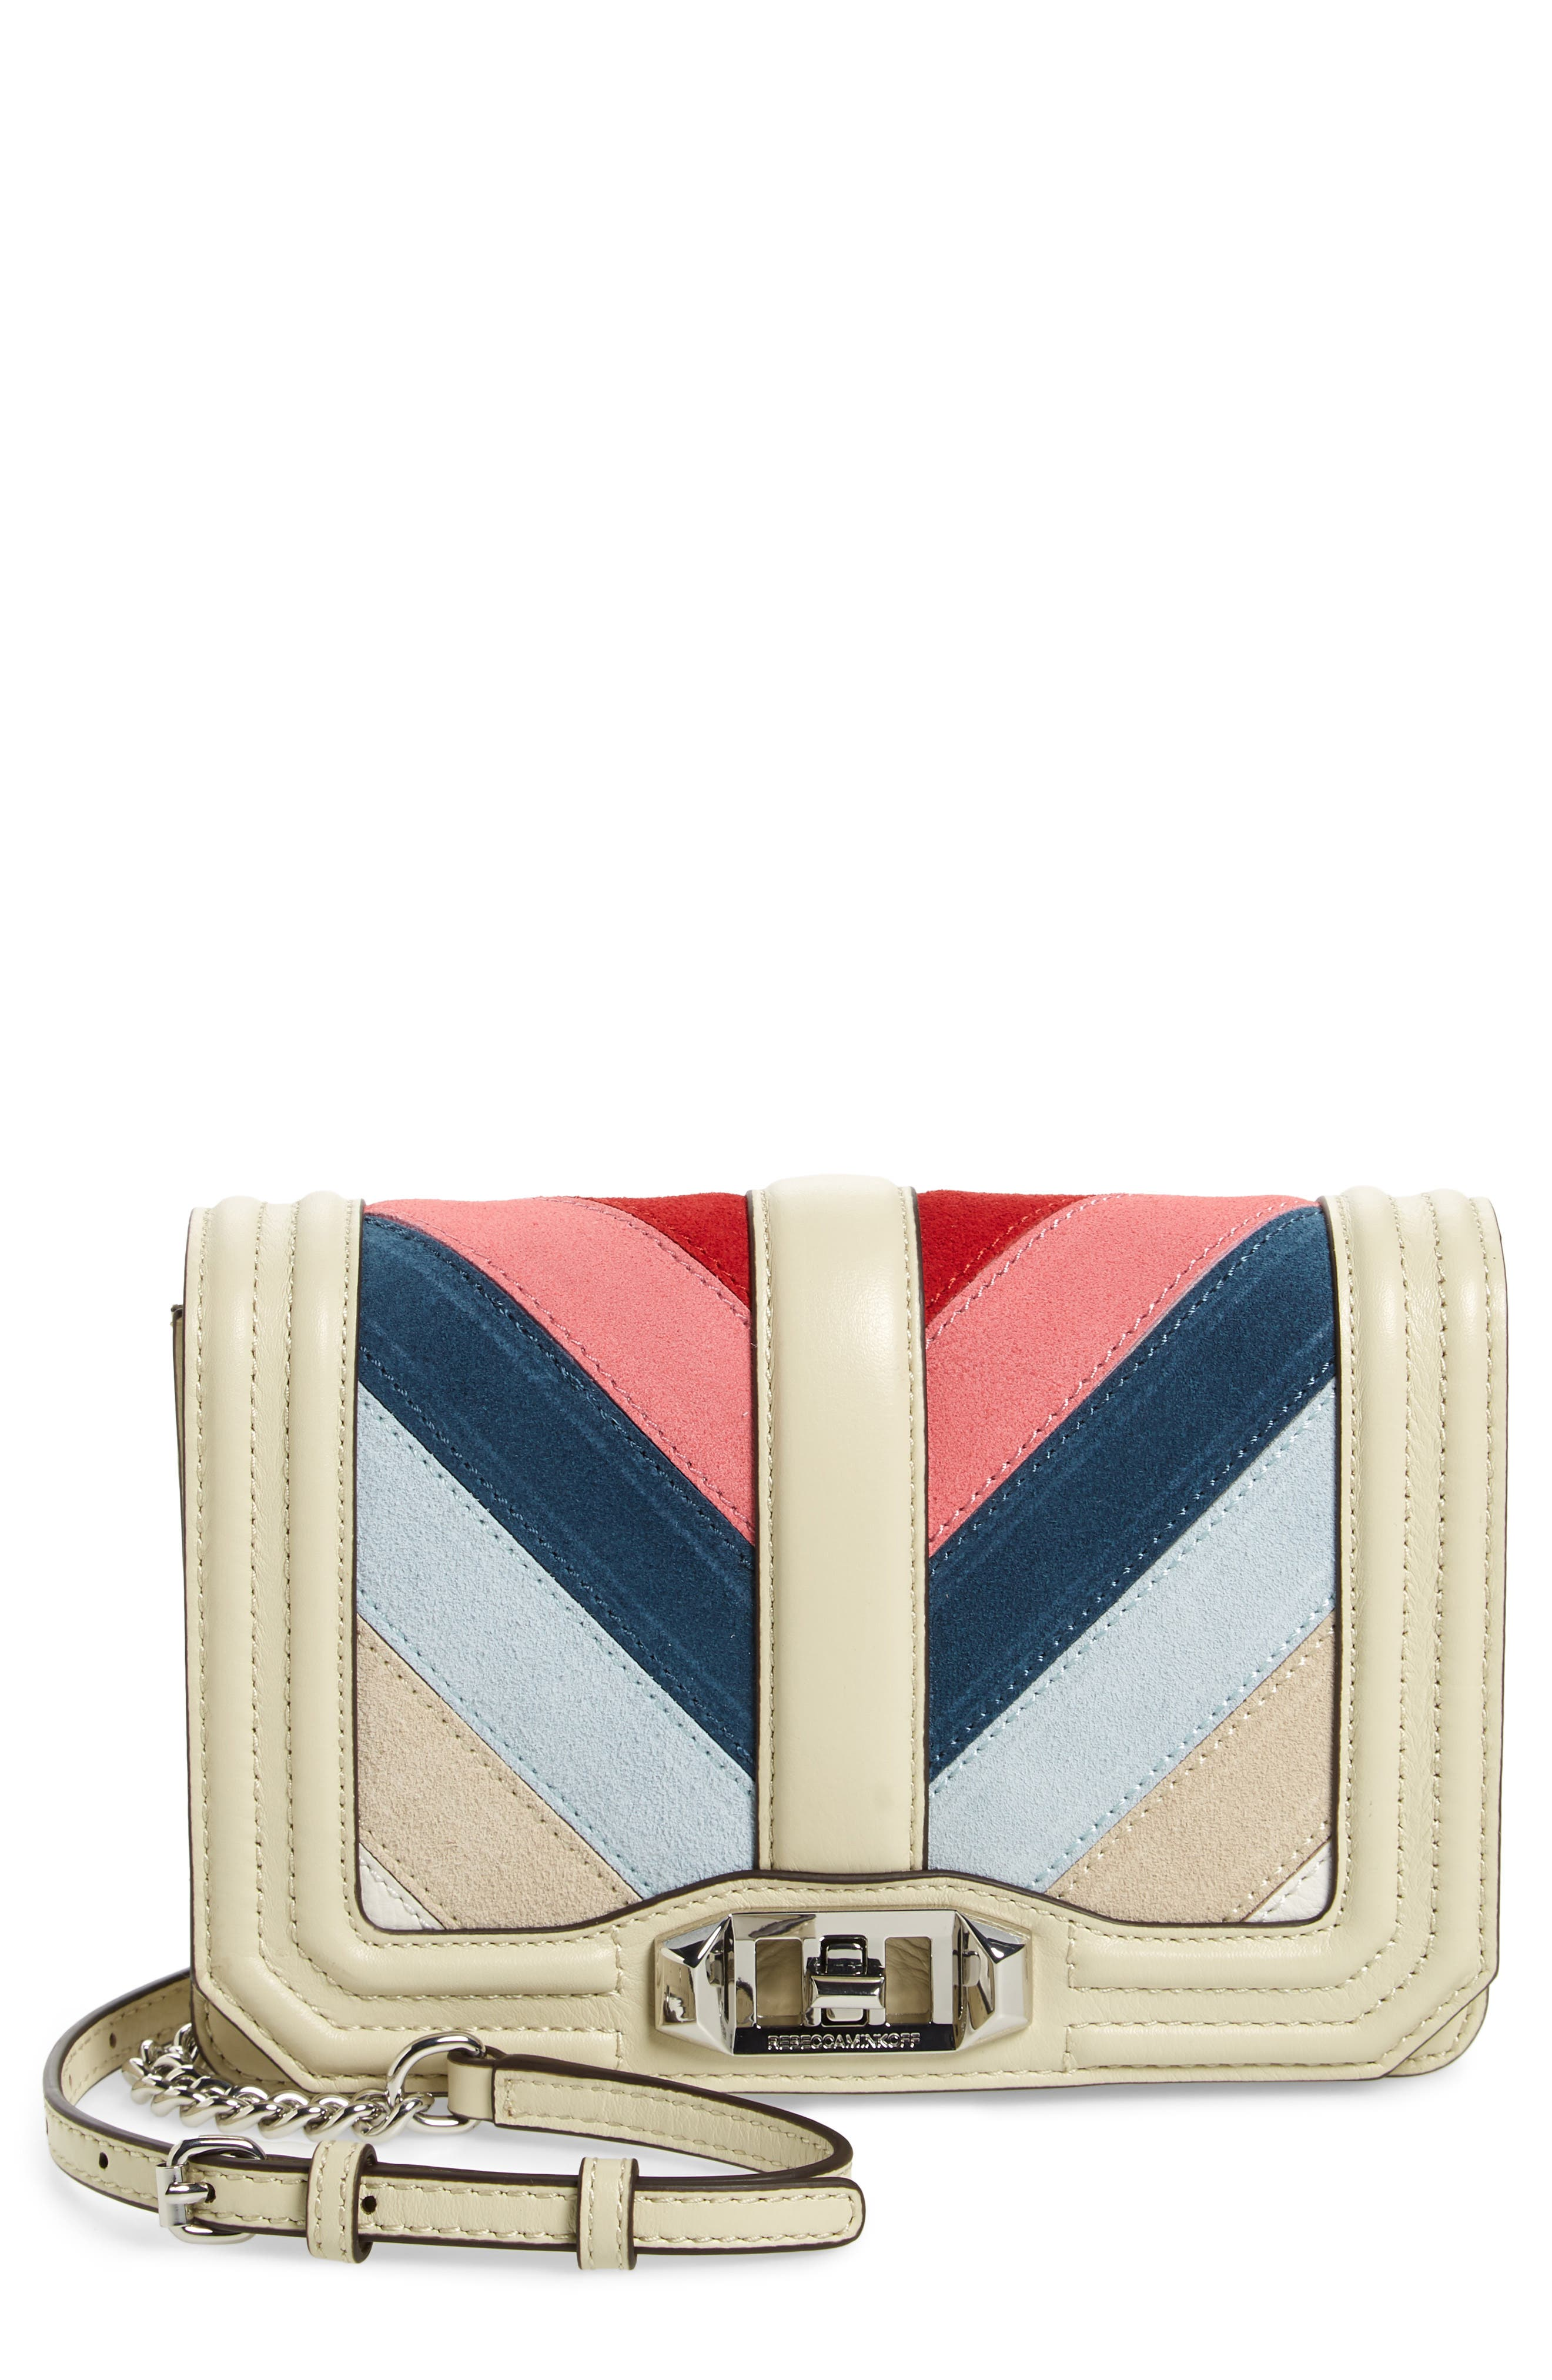 Small Love Chevron Patchwork Crossbody Bag,                             Main thumbnail 1, color,                             PINK MULTI